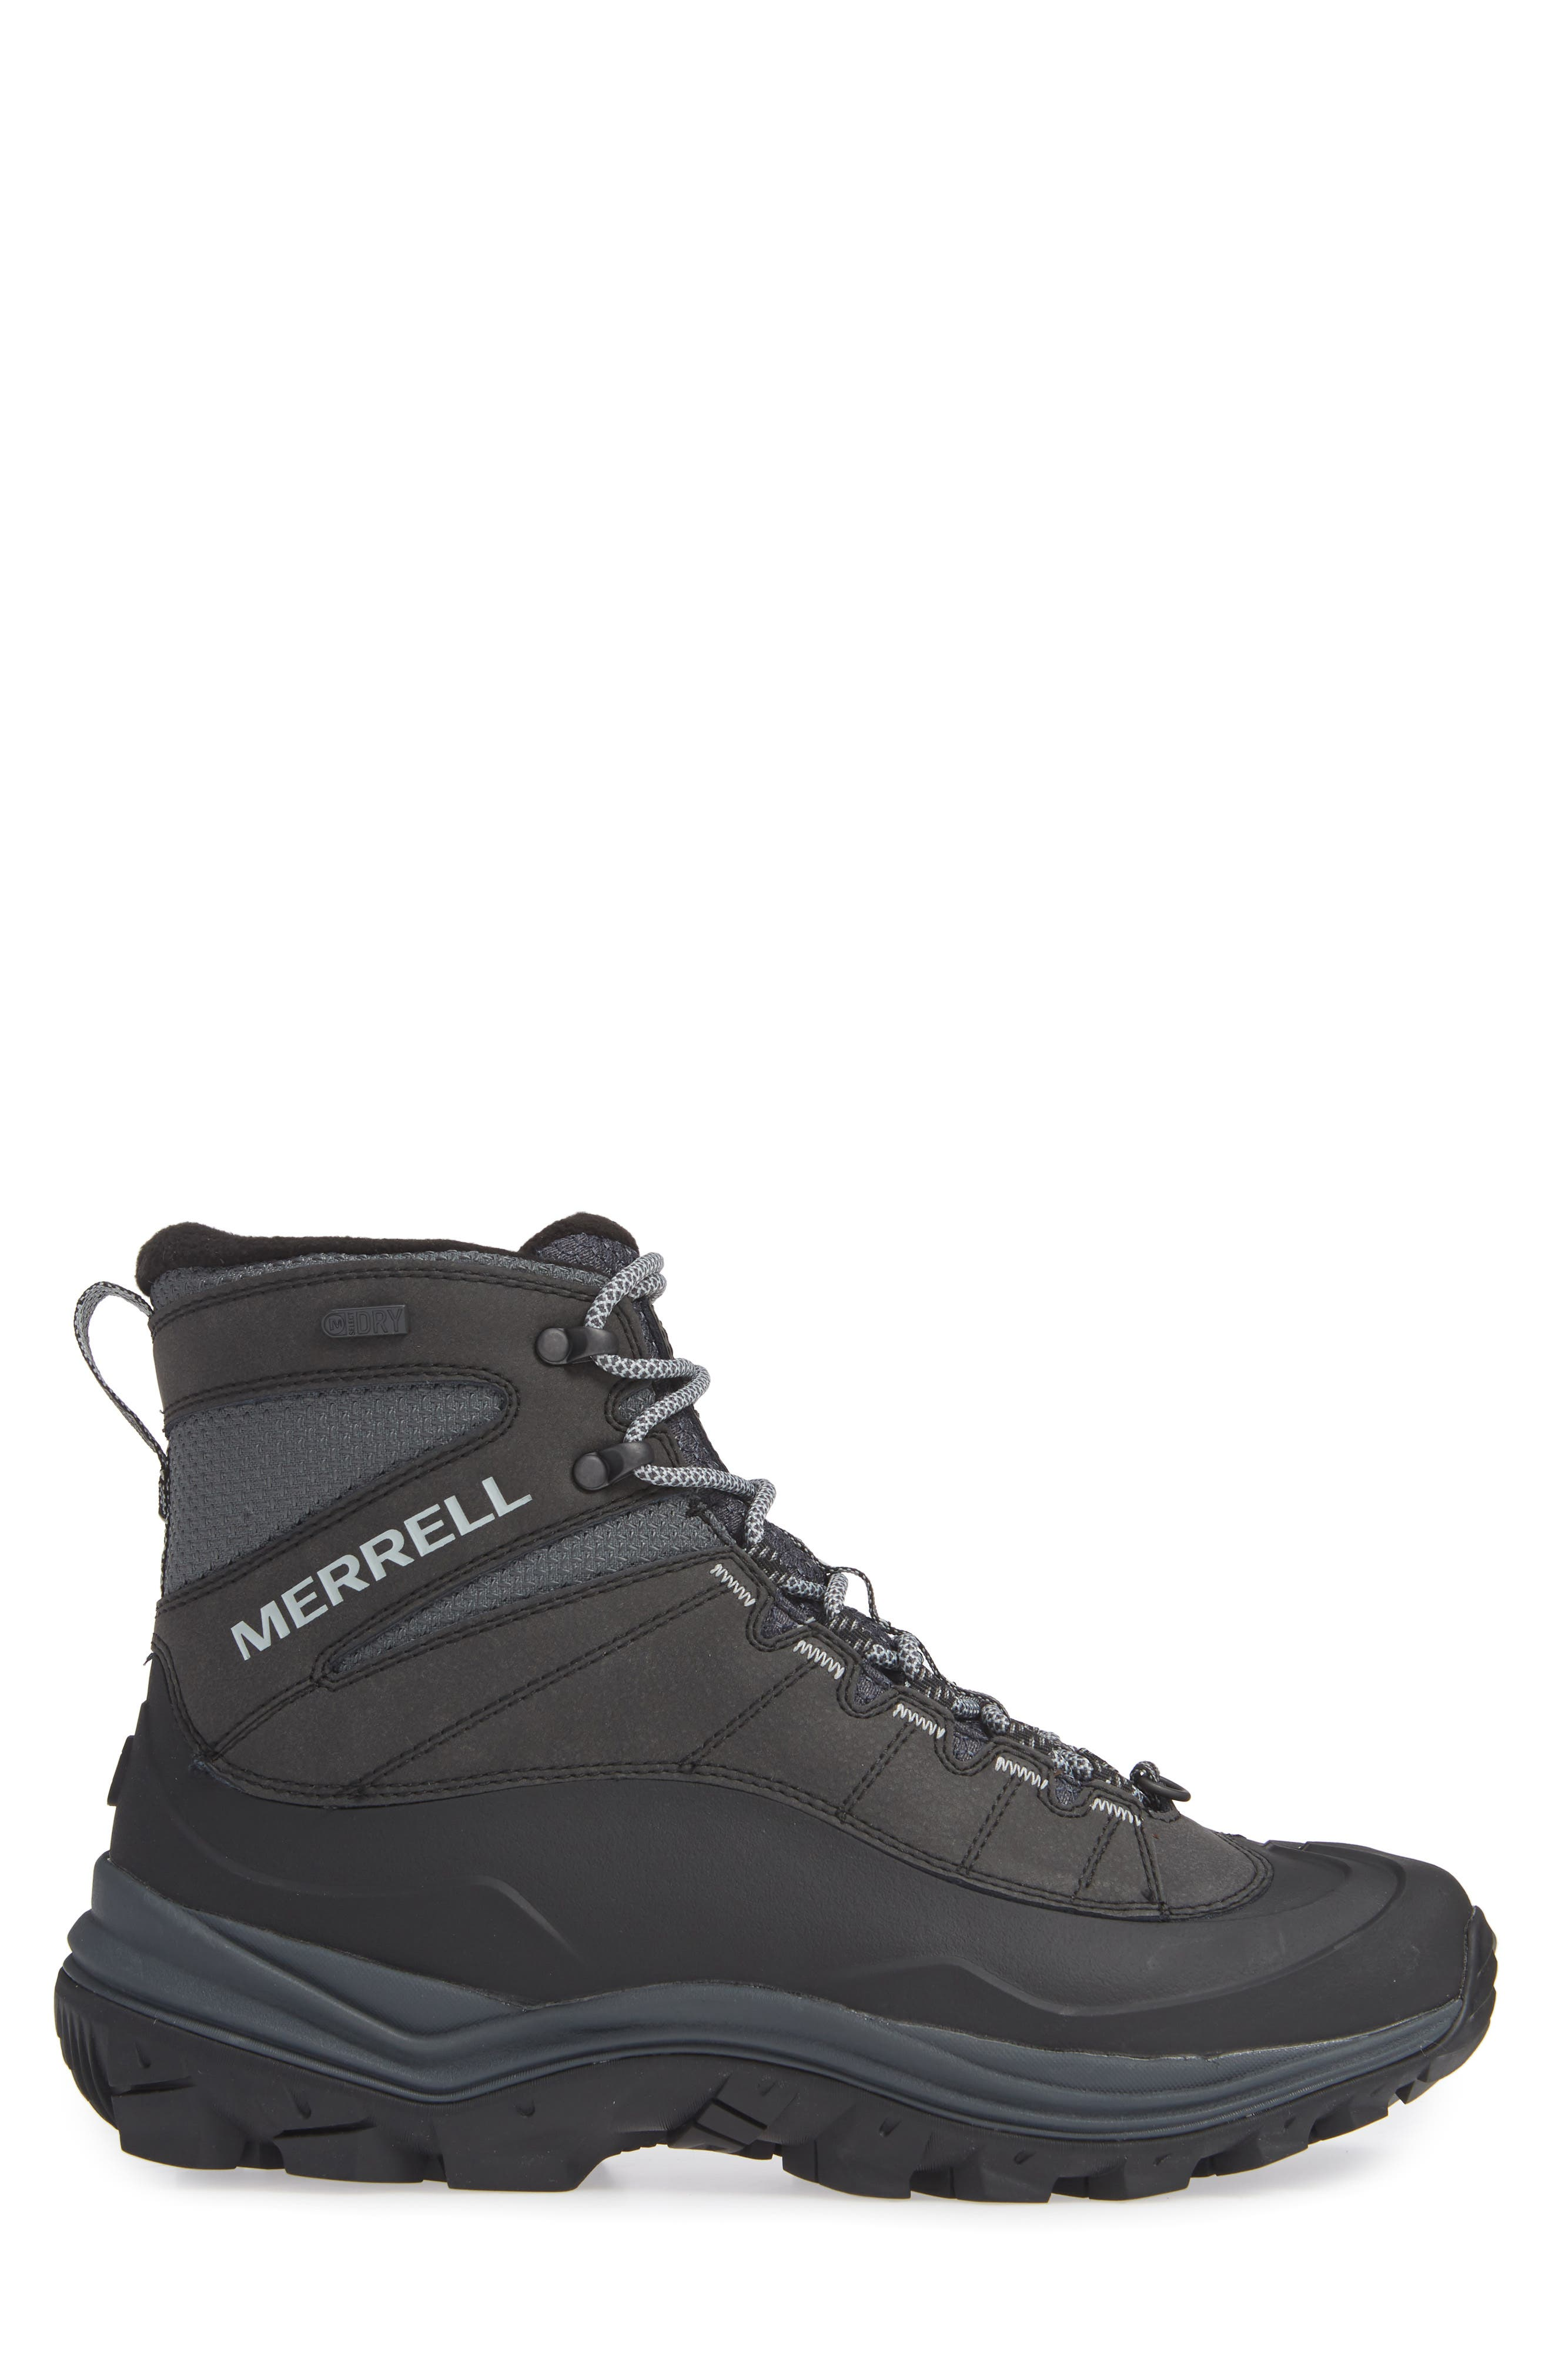 Thermo Chill Waterproof Snow Boot,                             Alternate thumbnail 3, color,                             001